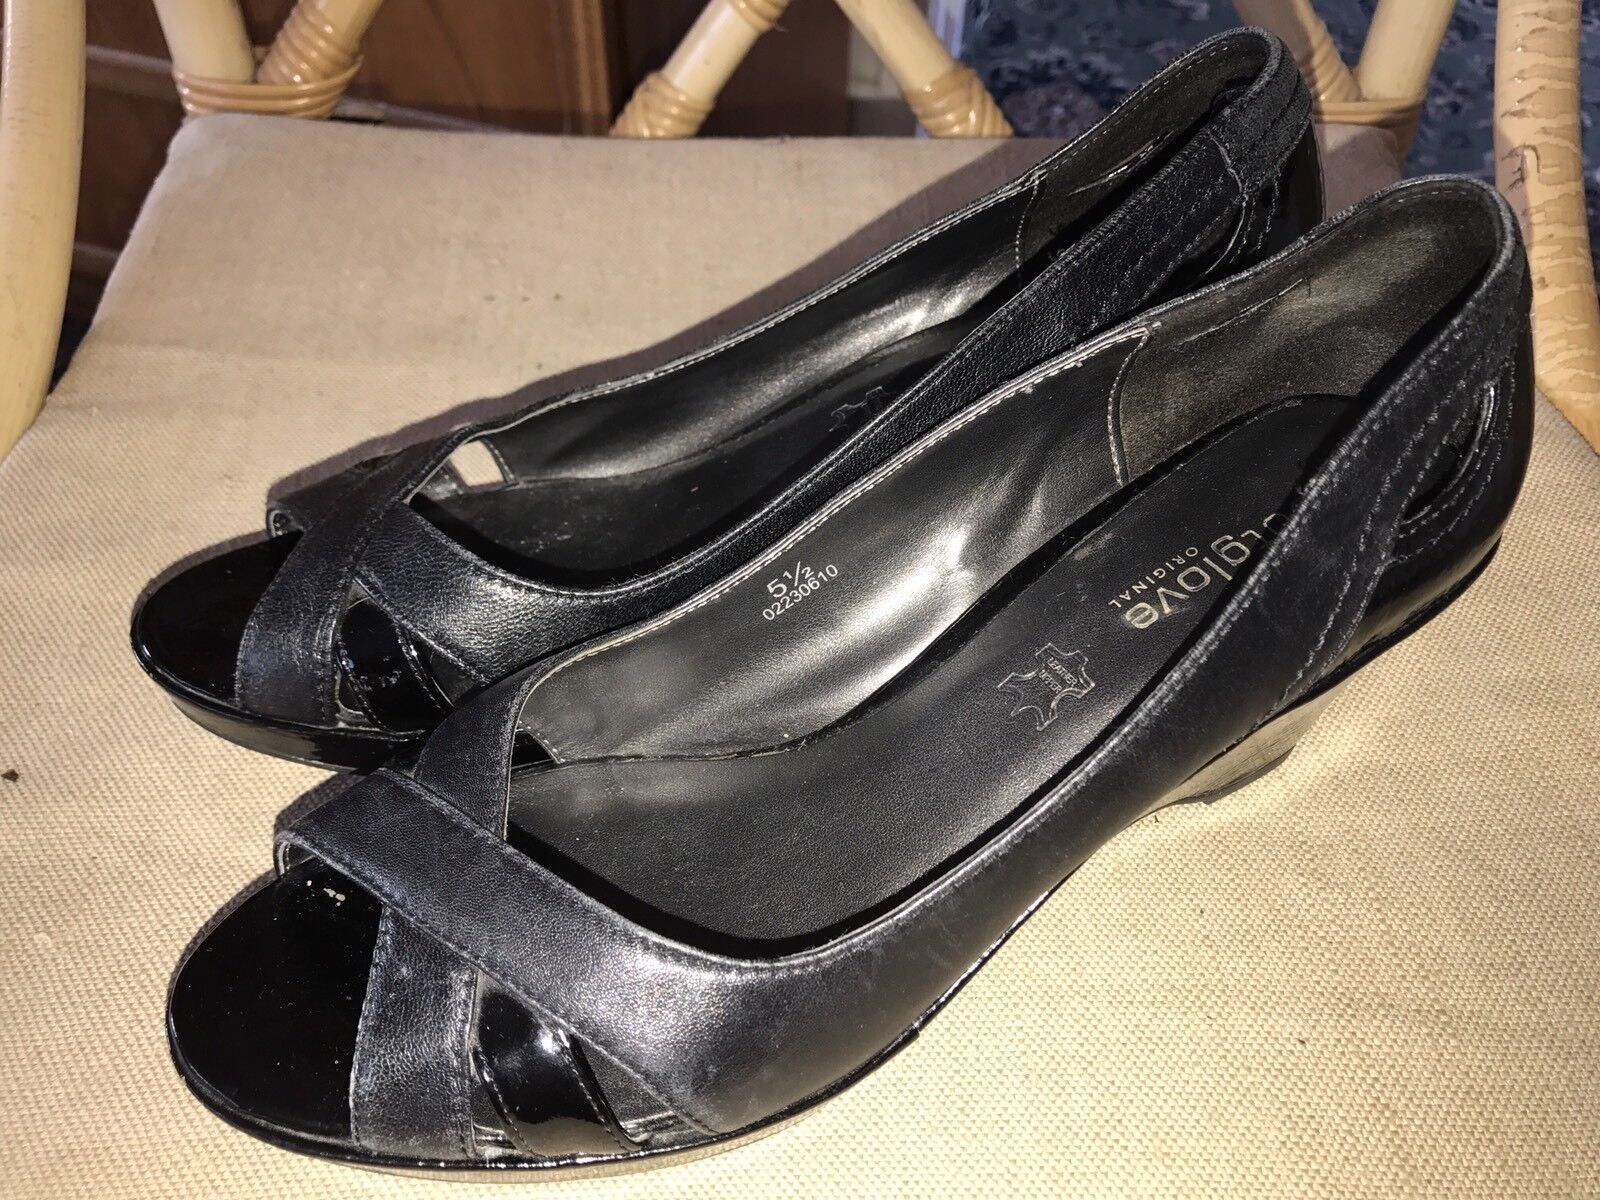 M & S Patent FOOTGLOVE Open Toe Black Leather & Patent S Wedge STD a5904a